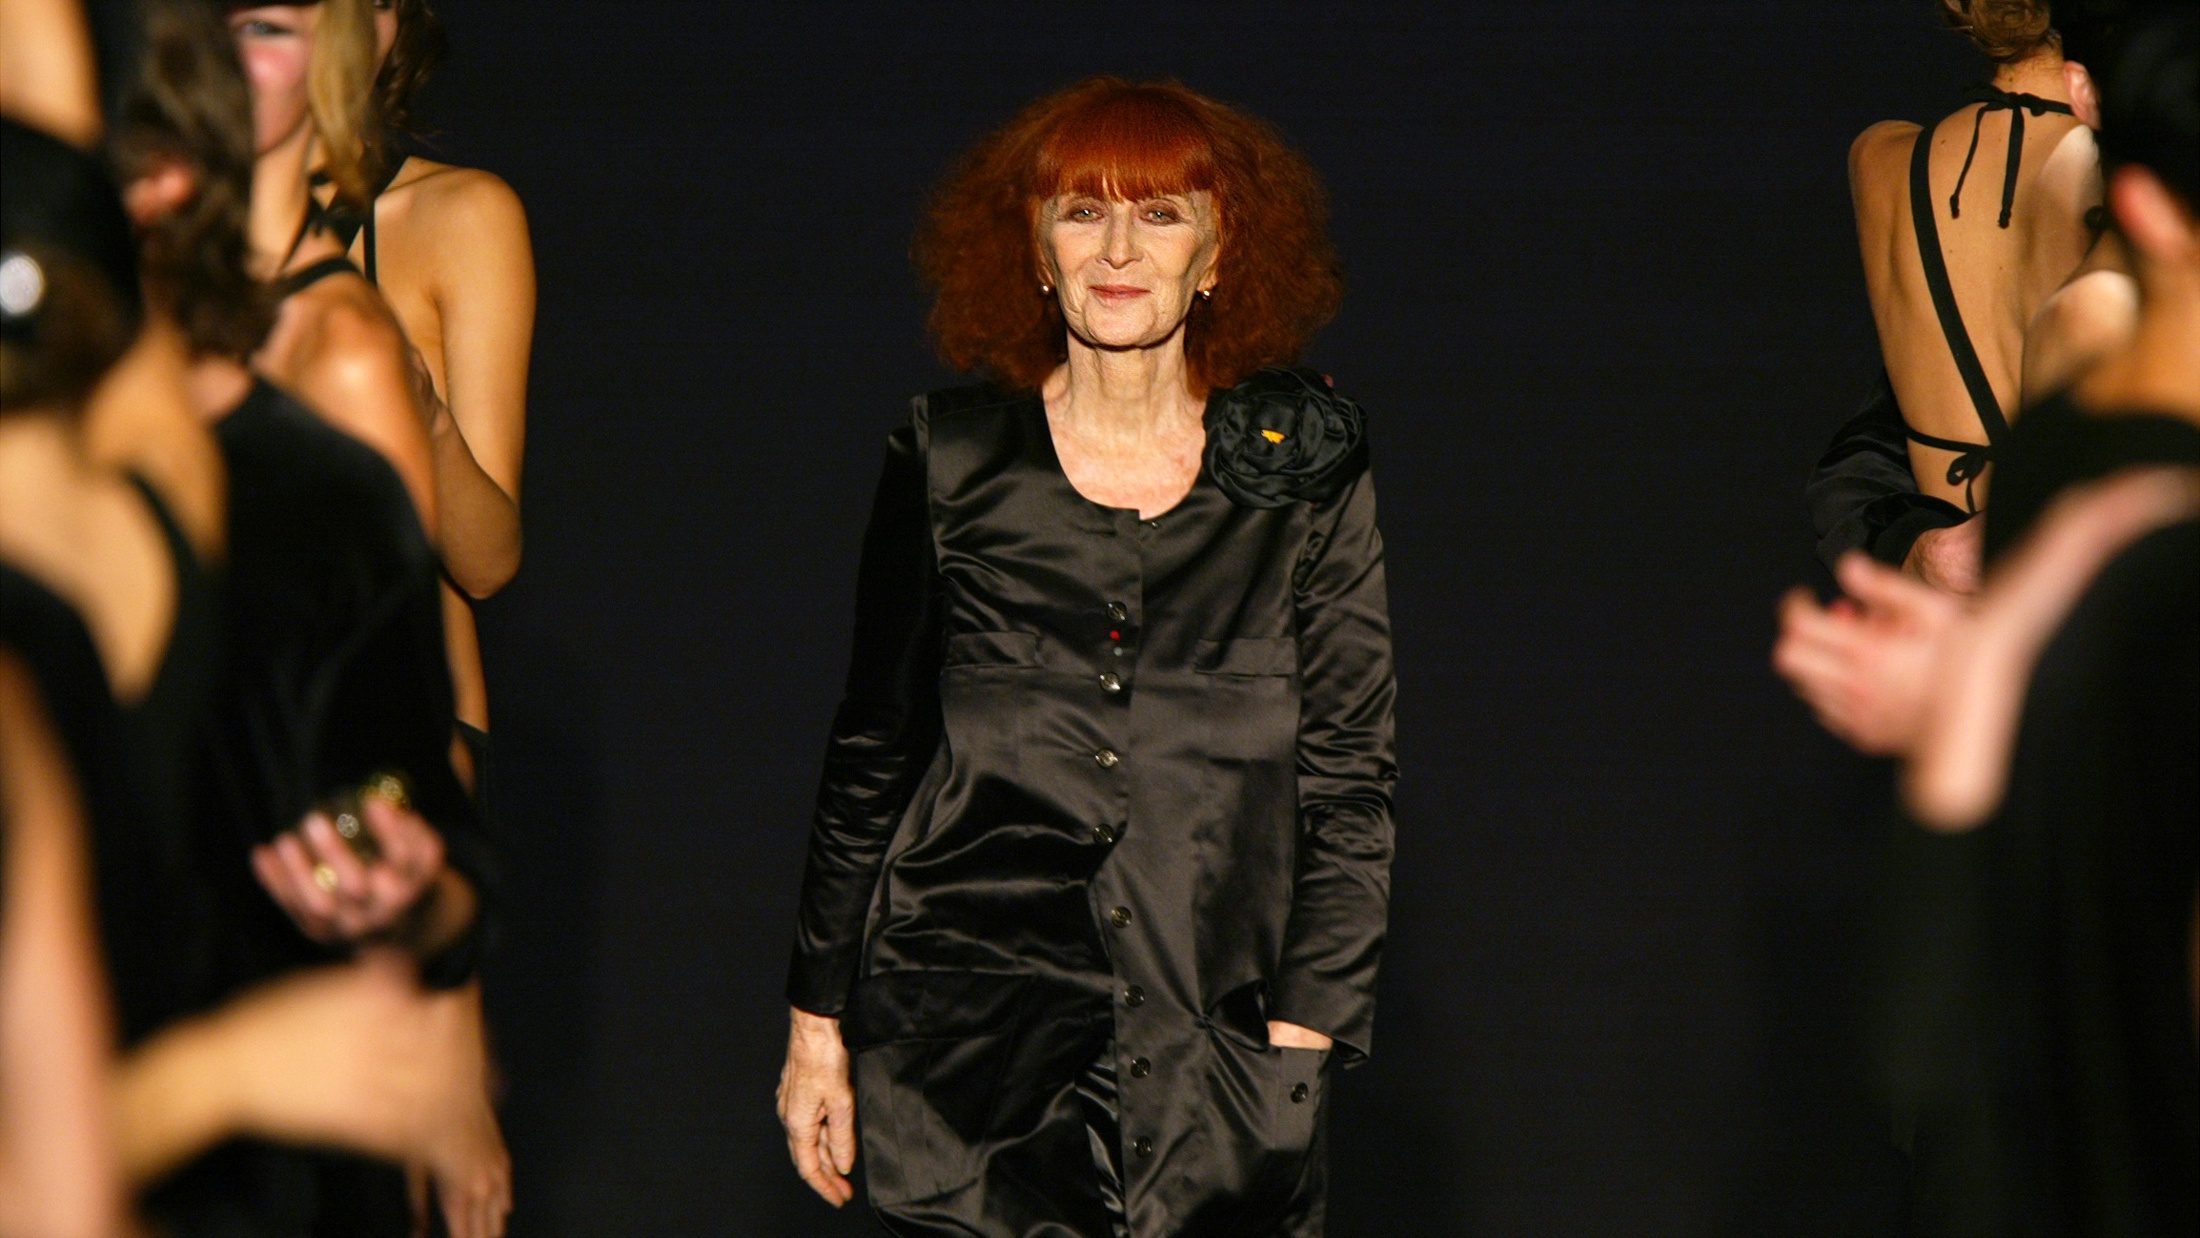 Models applaud French designer Sonia Rykiel at the end of her Spring-Summer ready-to-wear women's fashion collection for 2004 in Paris, France, October 9, 2003. Sonia Rykiel, known for her brightly coloured striped outfits, has died at the age of 86, the parent company of the fashion label she founded said August 25, 2016. REUTERS/Charles Platiau/File Photo